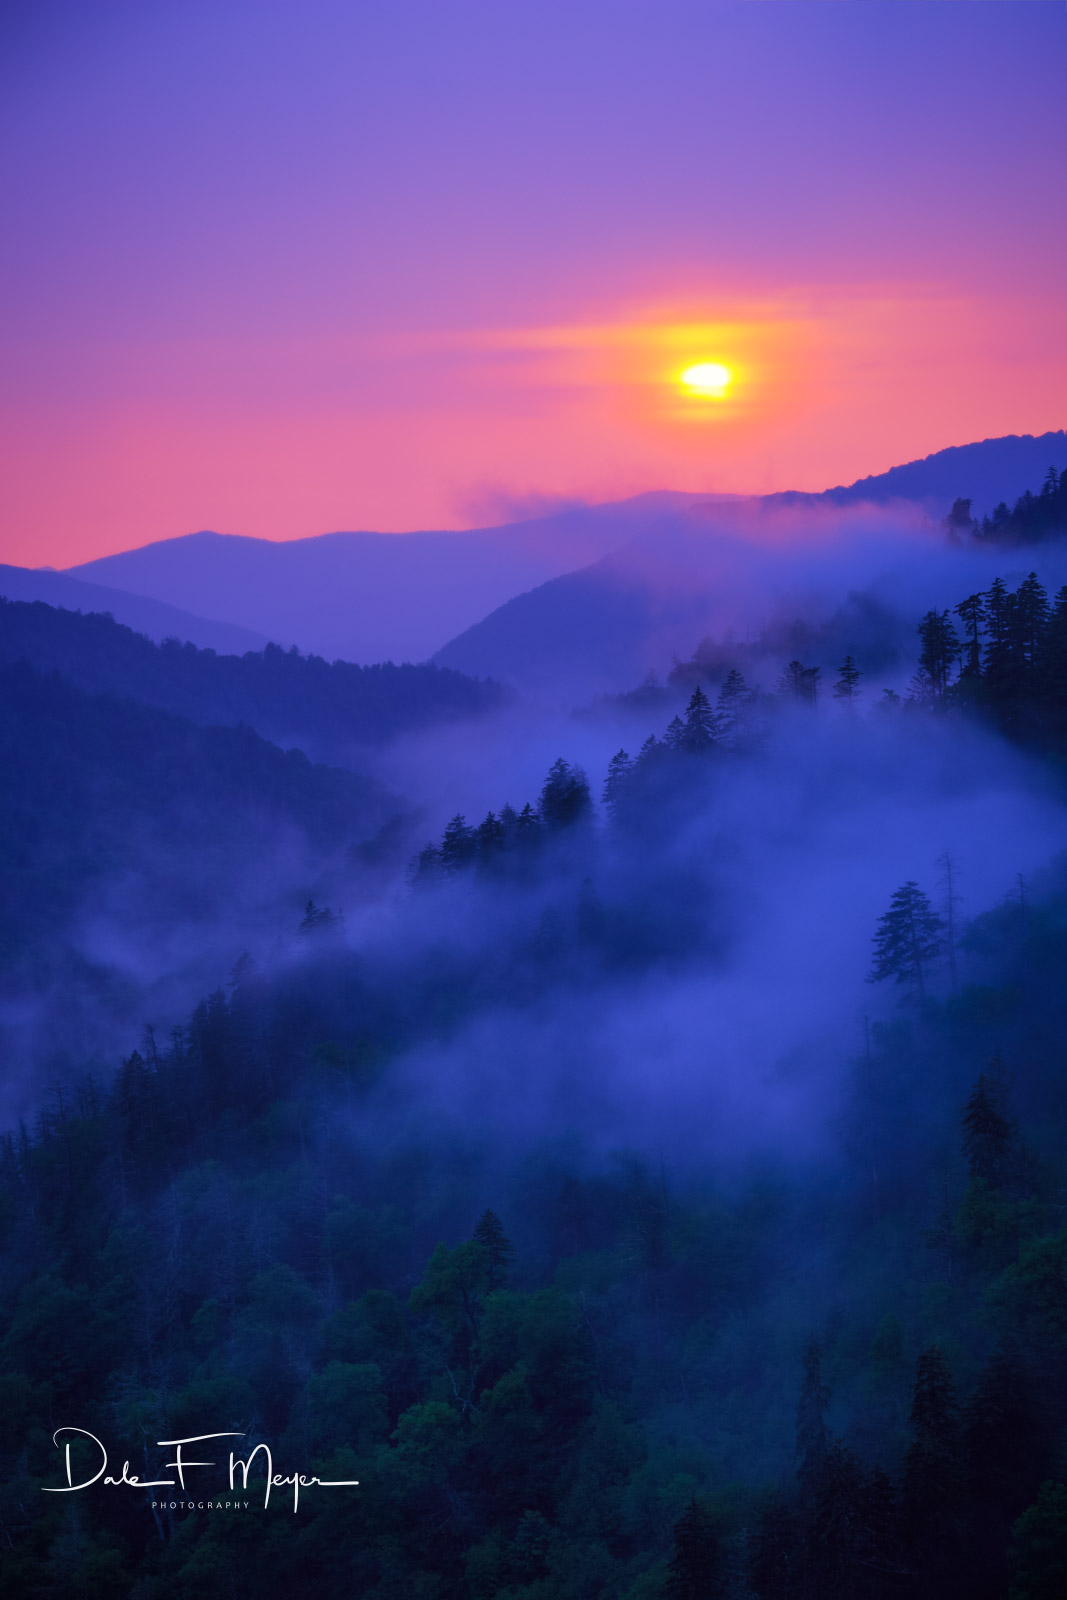 Great Smoky Mountains, Mountain Sunset, Mountains and Overlooks Gallerie, Spring 2013, photo